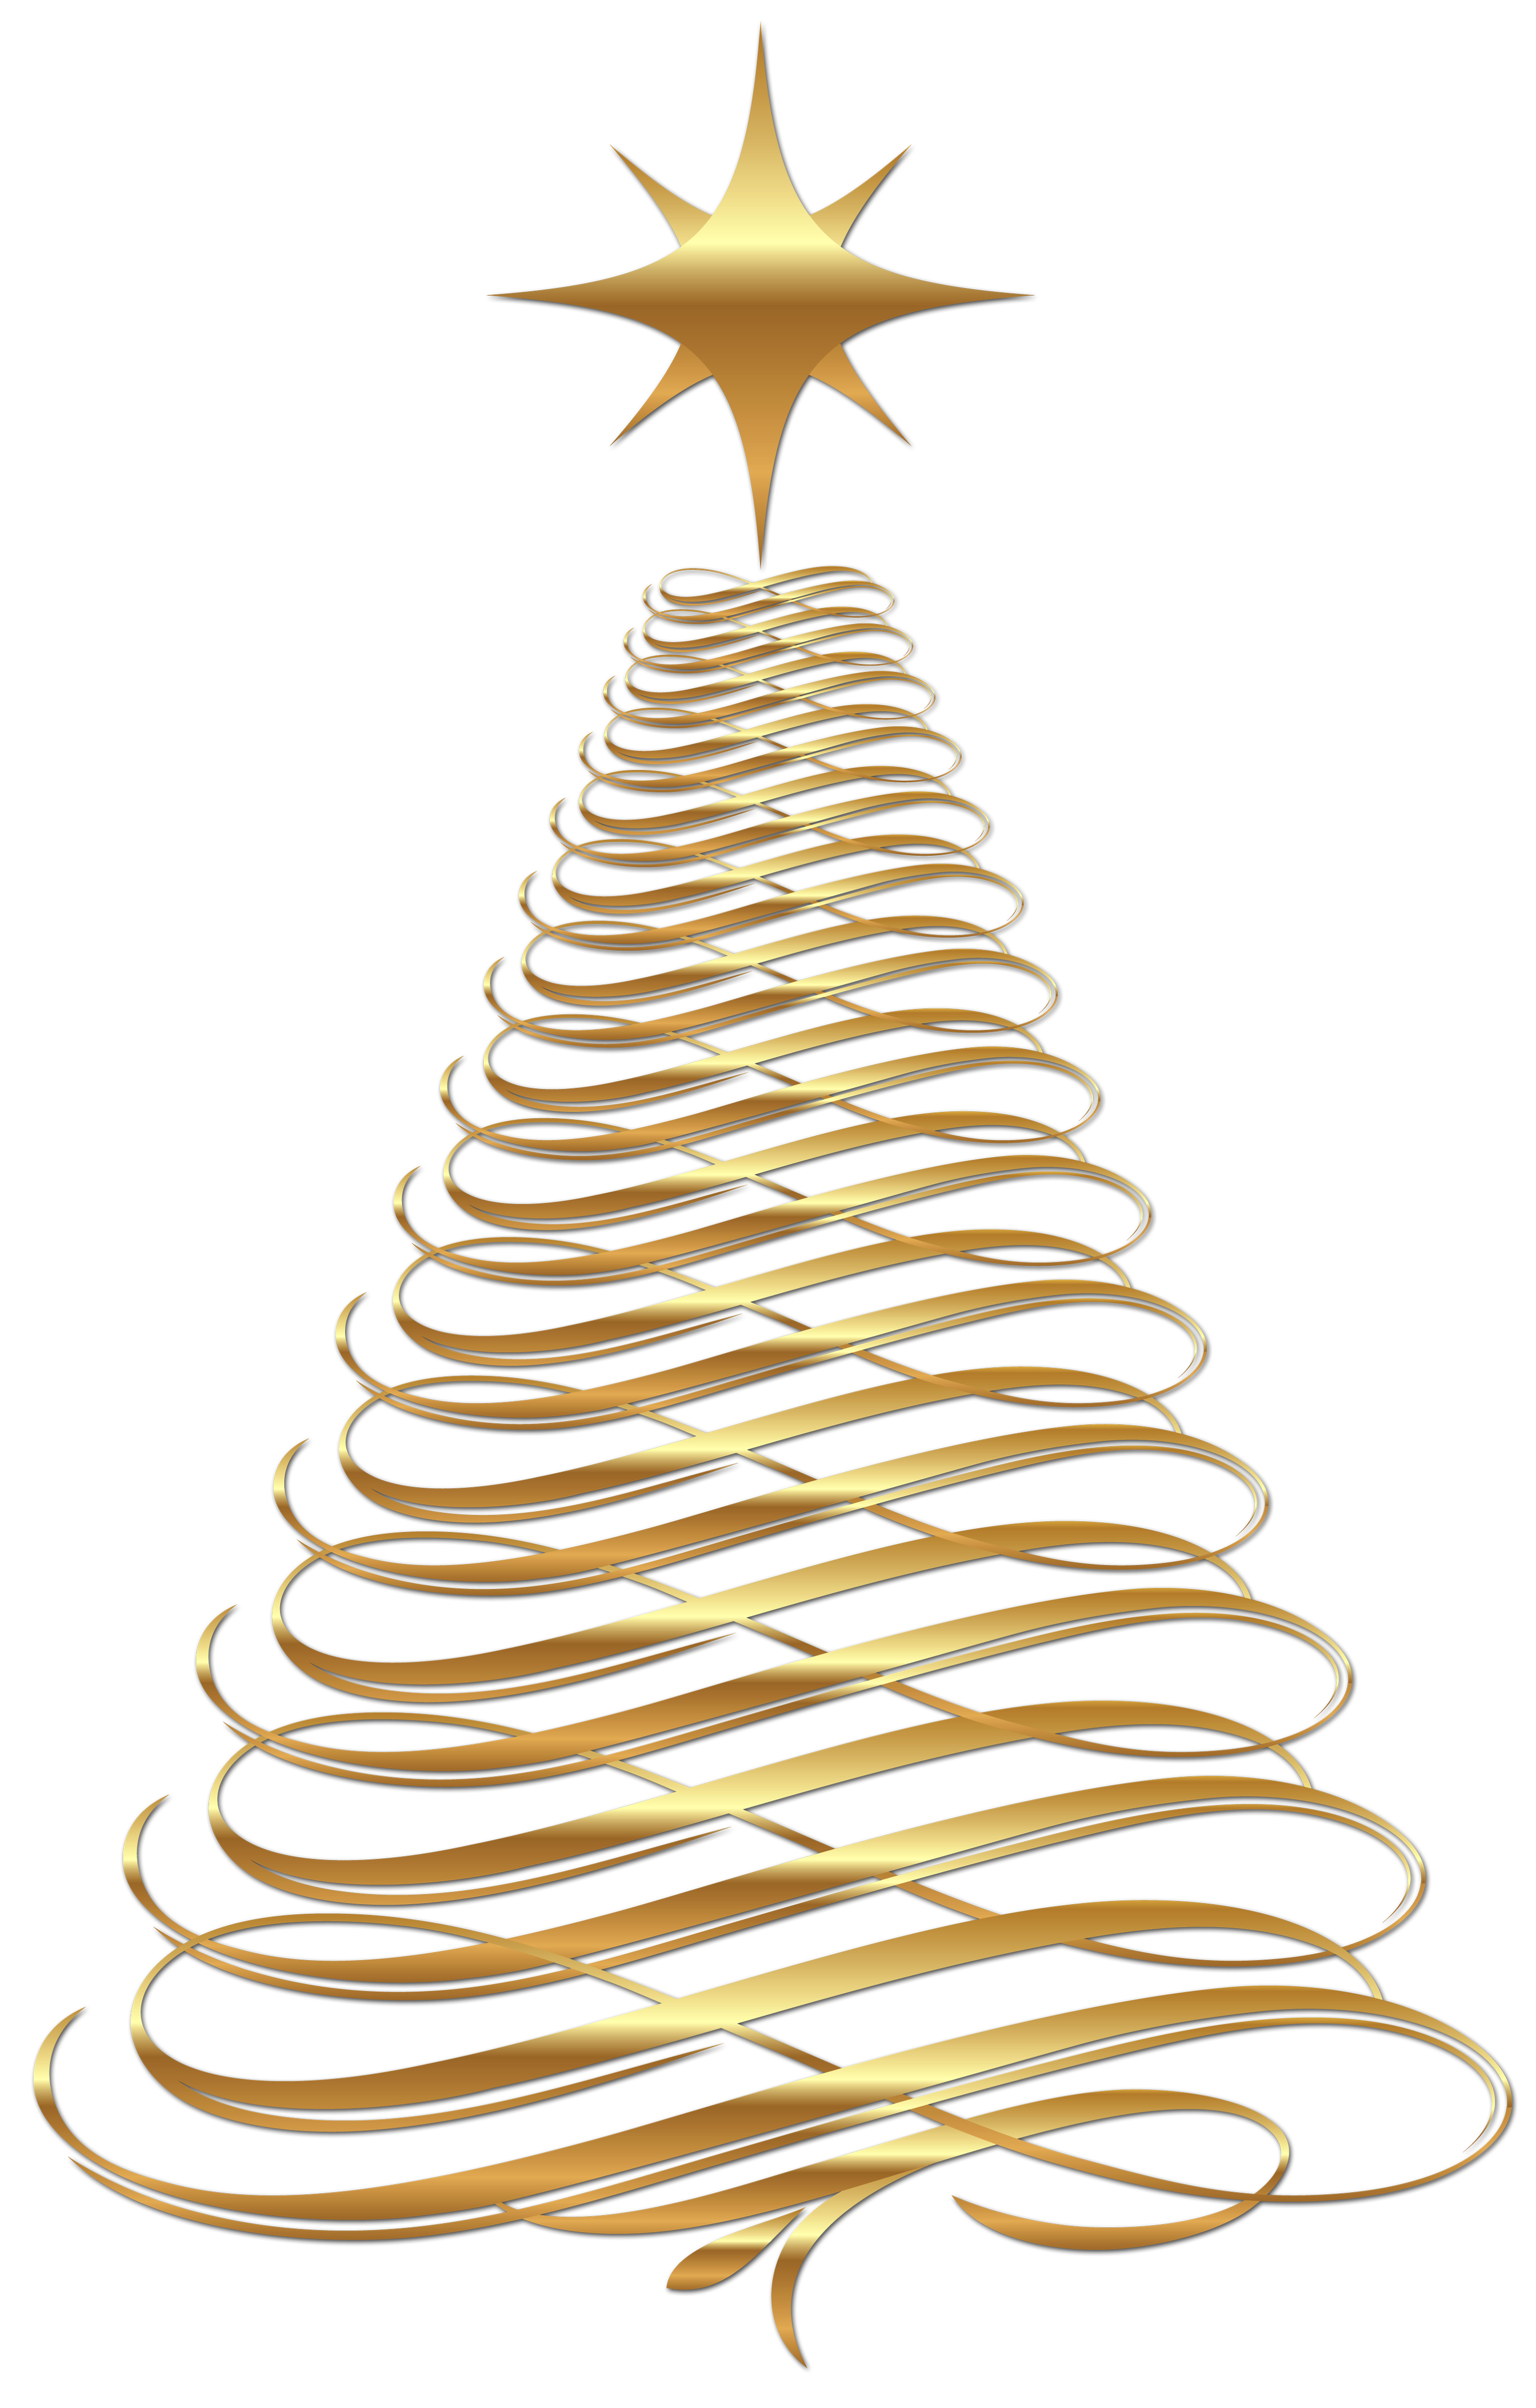 Fancy white christmas ornaments background png. Large transparent gold tree